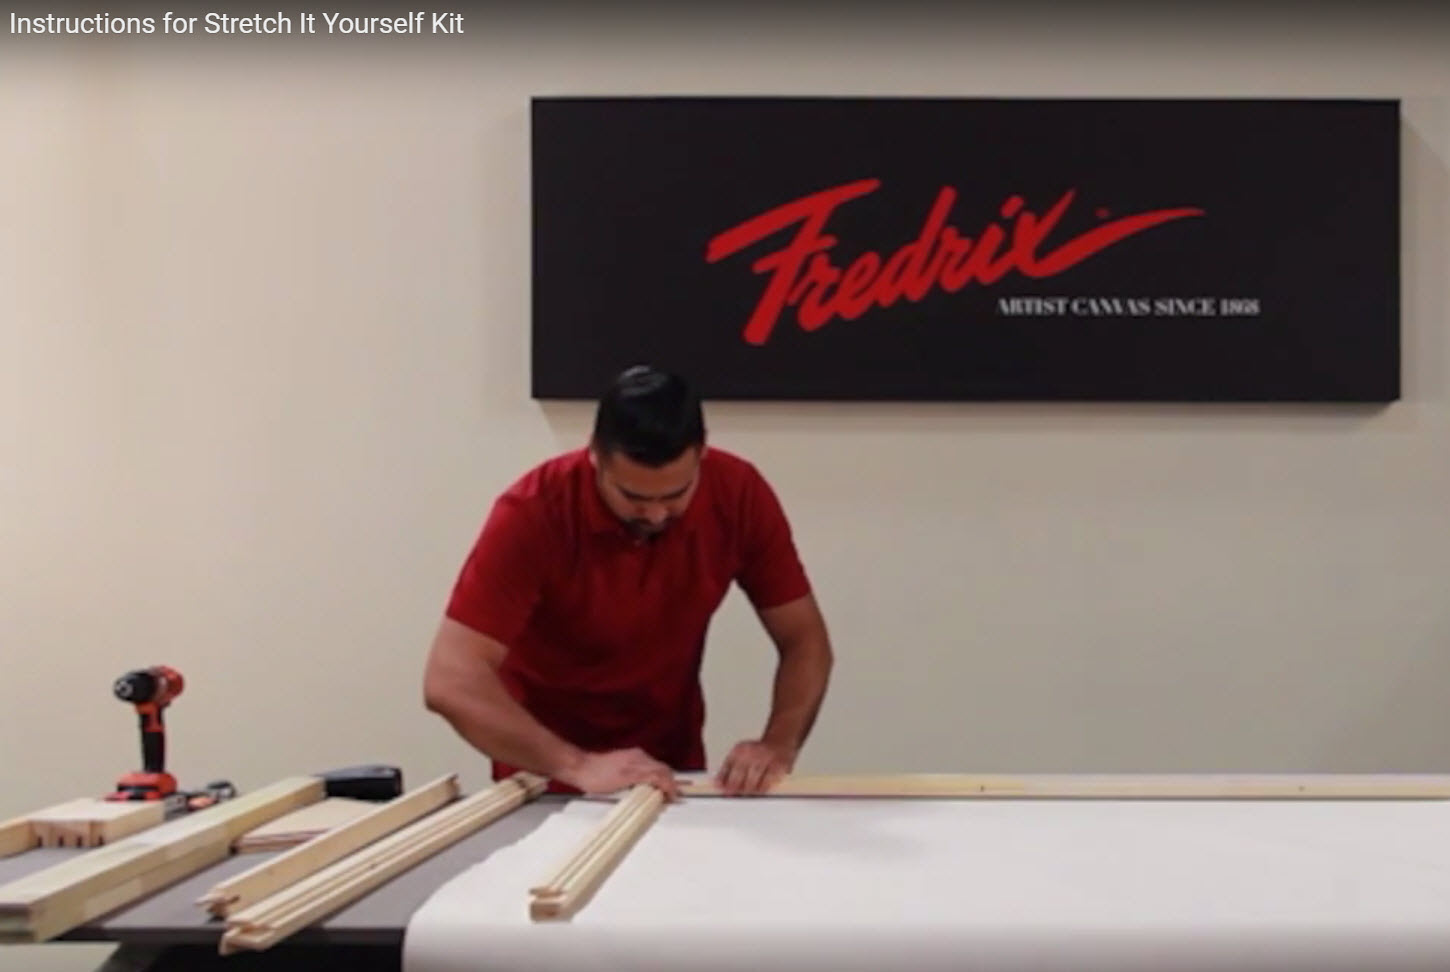 How to: Stretch It Yourself - Fredrix Pro Series Dixie Canvas Kit